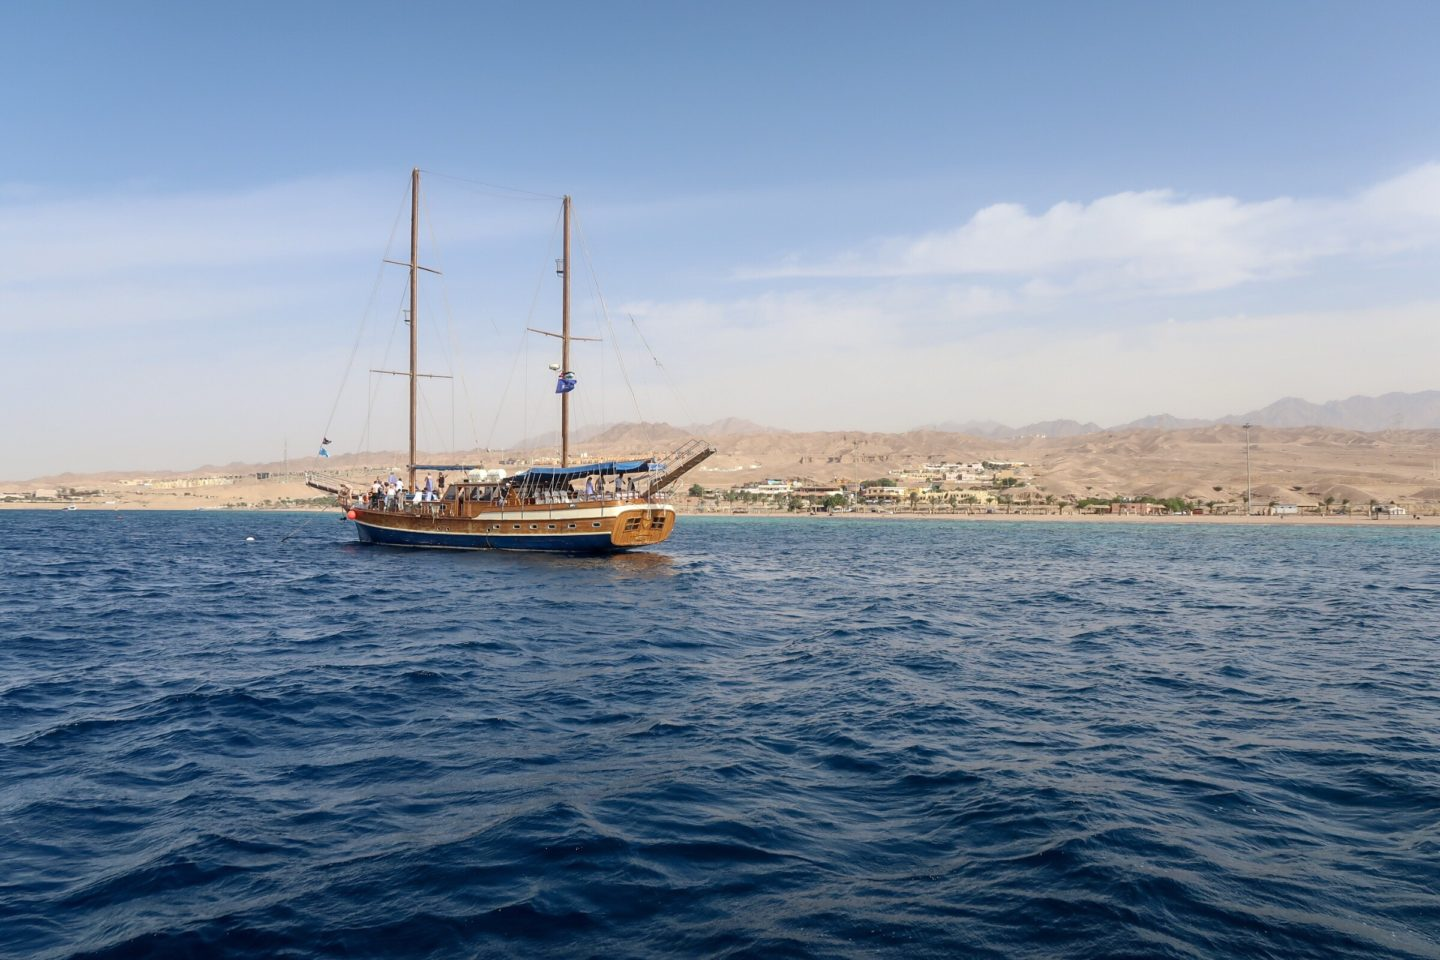 Jordan Itineraries - Traditional sailing yacht off the coast of Aqaba